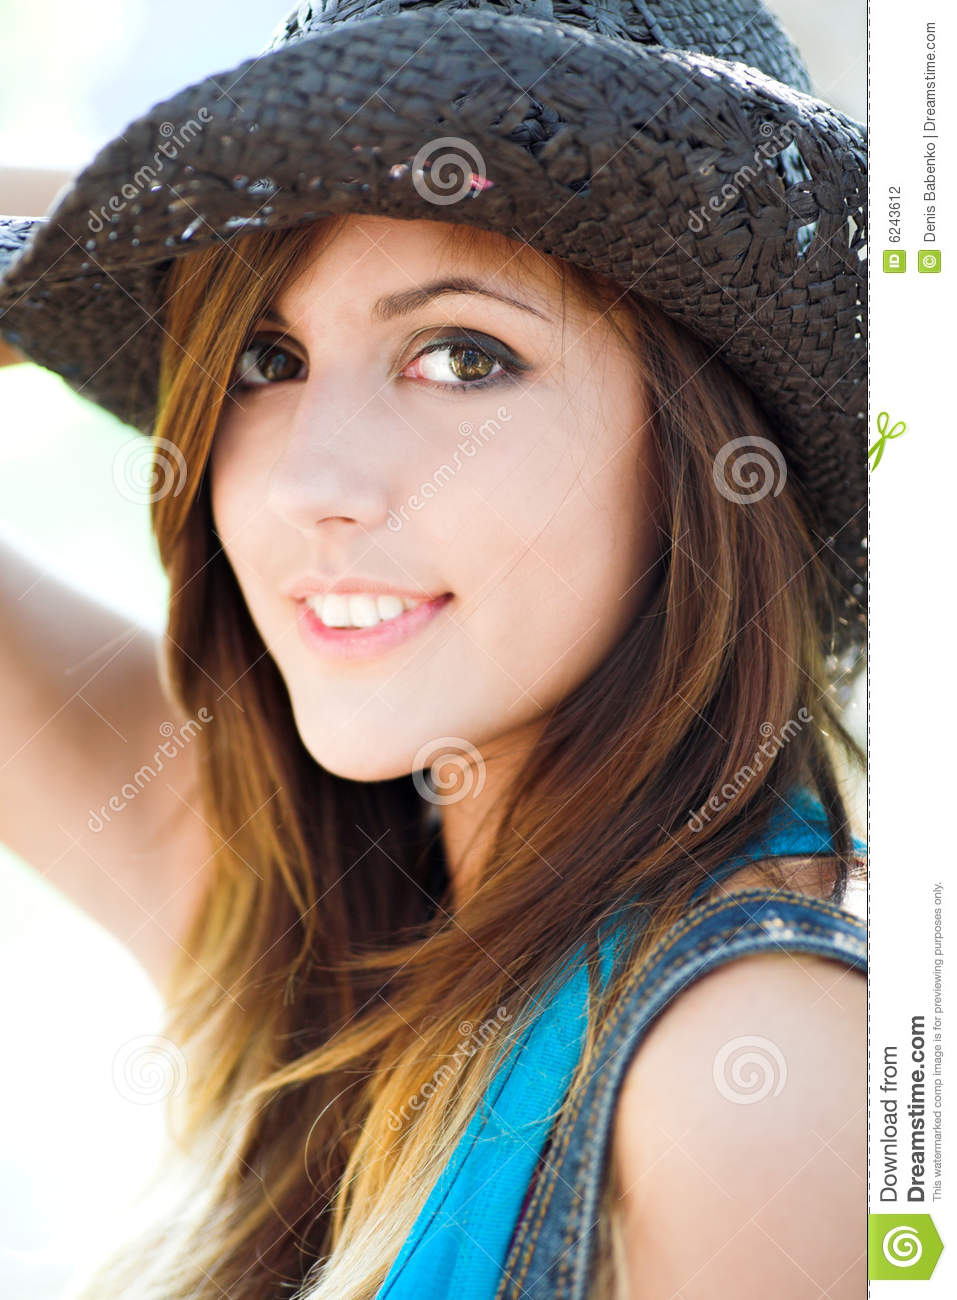 Profile Of Beautiful Smiling Girl Stock Photo - Image of ...